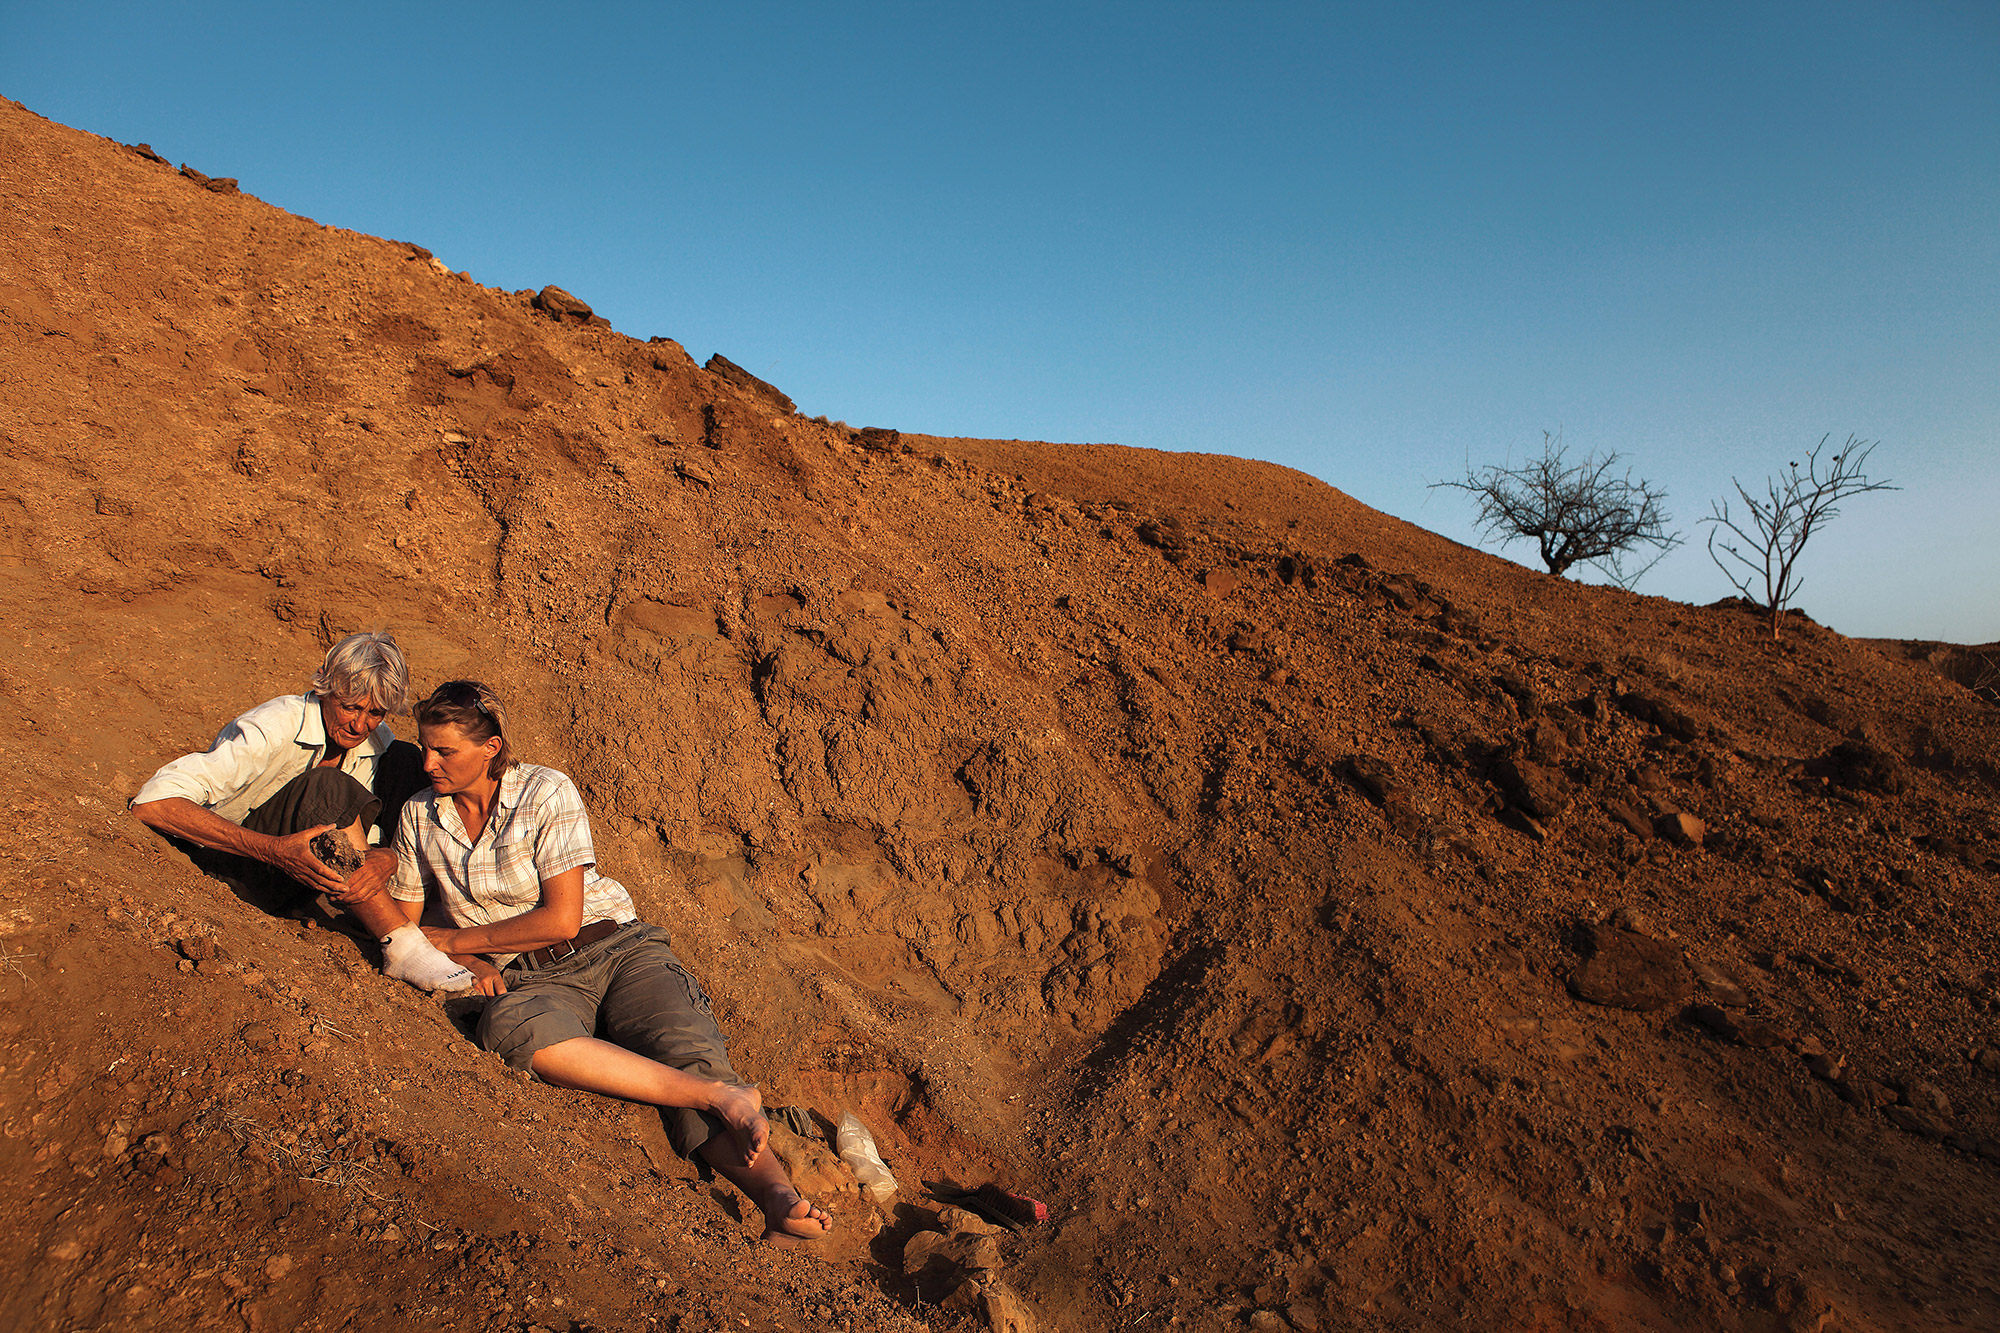 """EXPLORING HUMAN ORIGINS Meave Leakey, left, and daughter Louise Leakey hunt for fossils near the shores of Lake Turkana in Kenya. Stony Brook University's Turkana Basin Institute is the world-renowned base of operations for the Leakeys, who, together with Richard Leakey (not pictured) constitute the """"first family"""" of paleoanthropology. Photo: Mike Hettwer."""